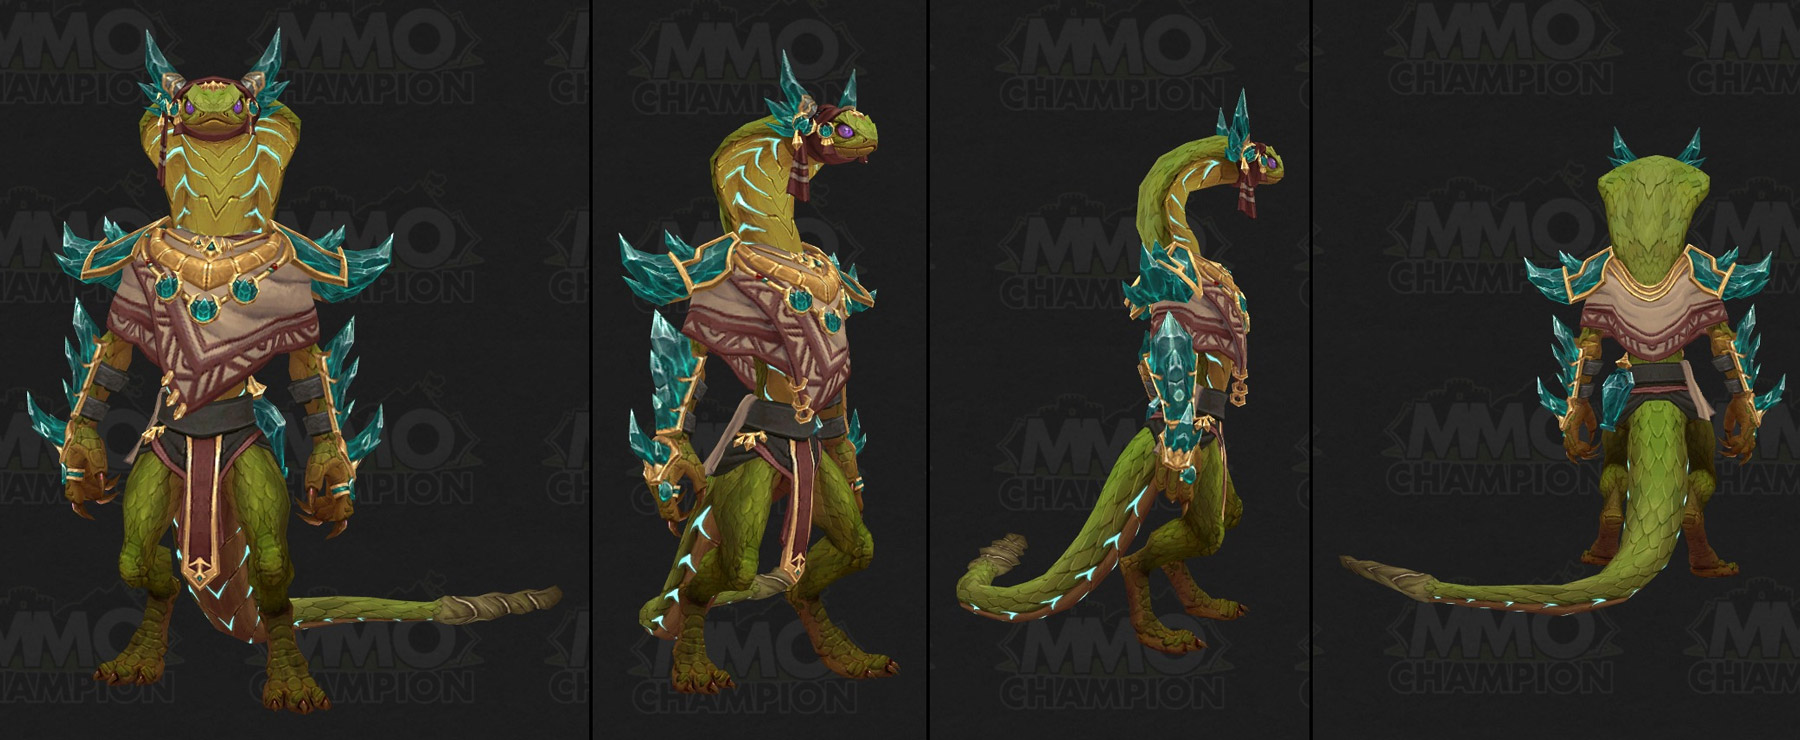 Peuple Sethrak de Zandalar - Battle of Azeroth